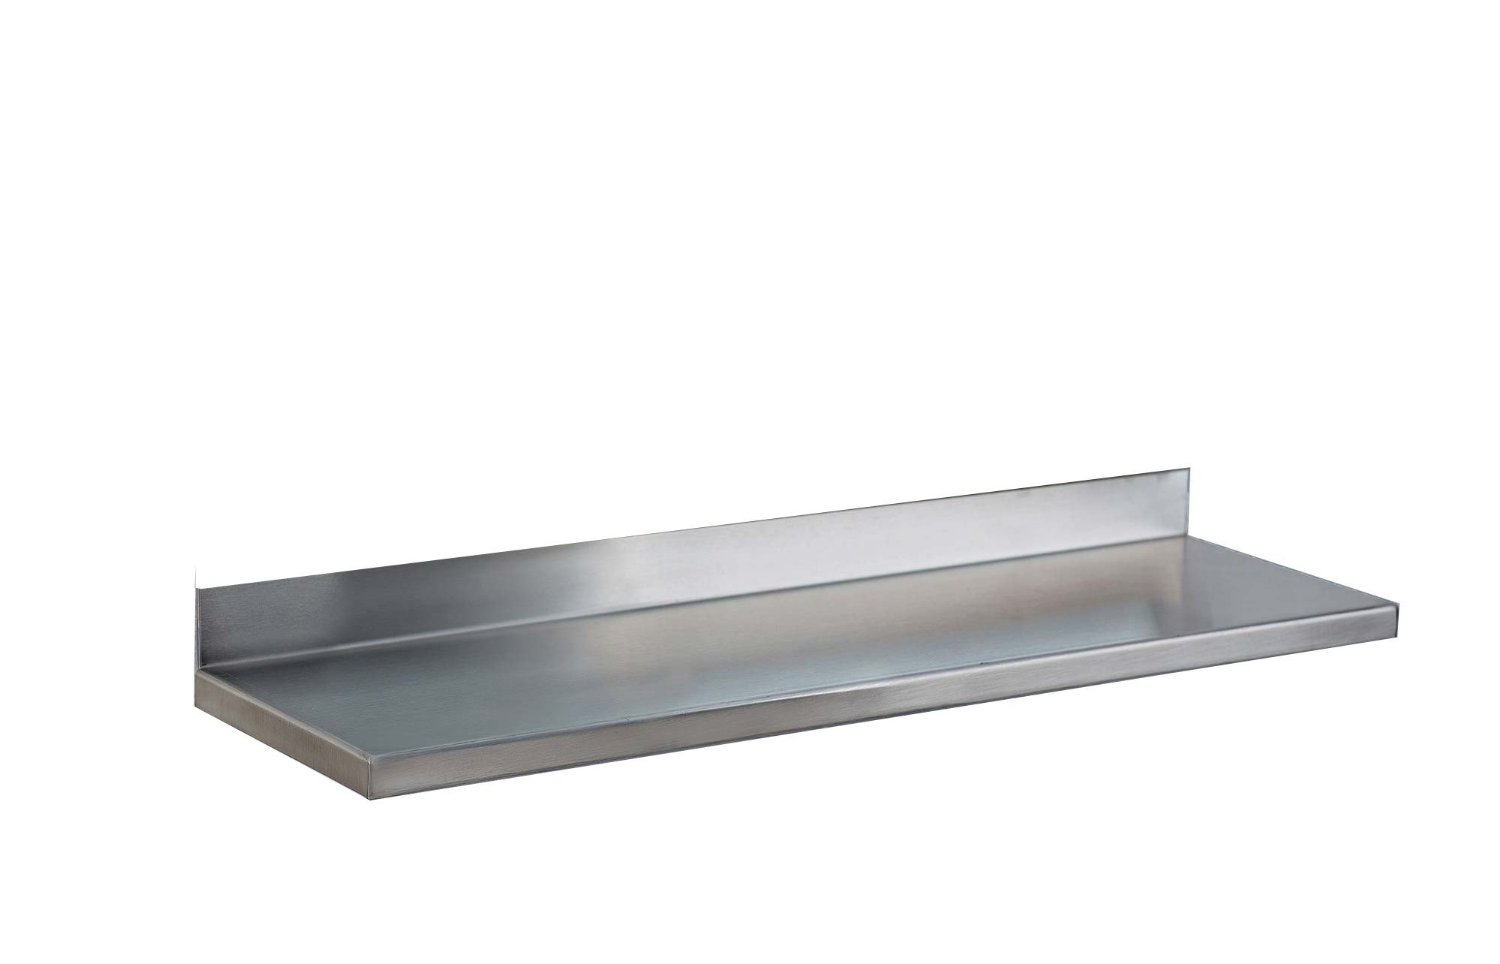 96-inch x 6-inch, Integral shelf, satin finish